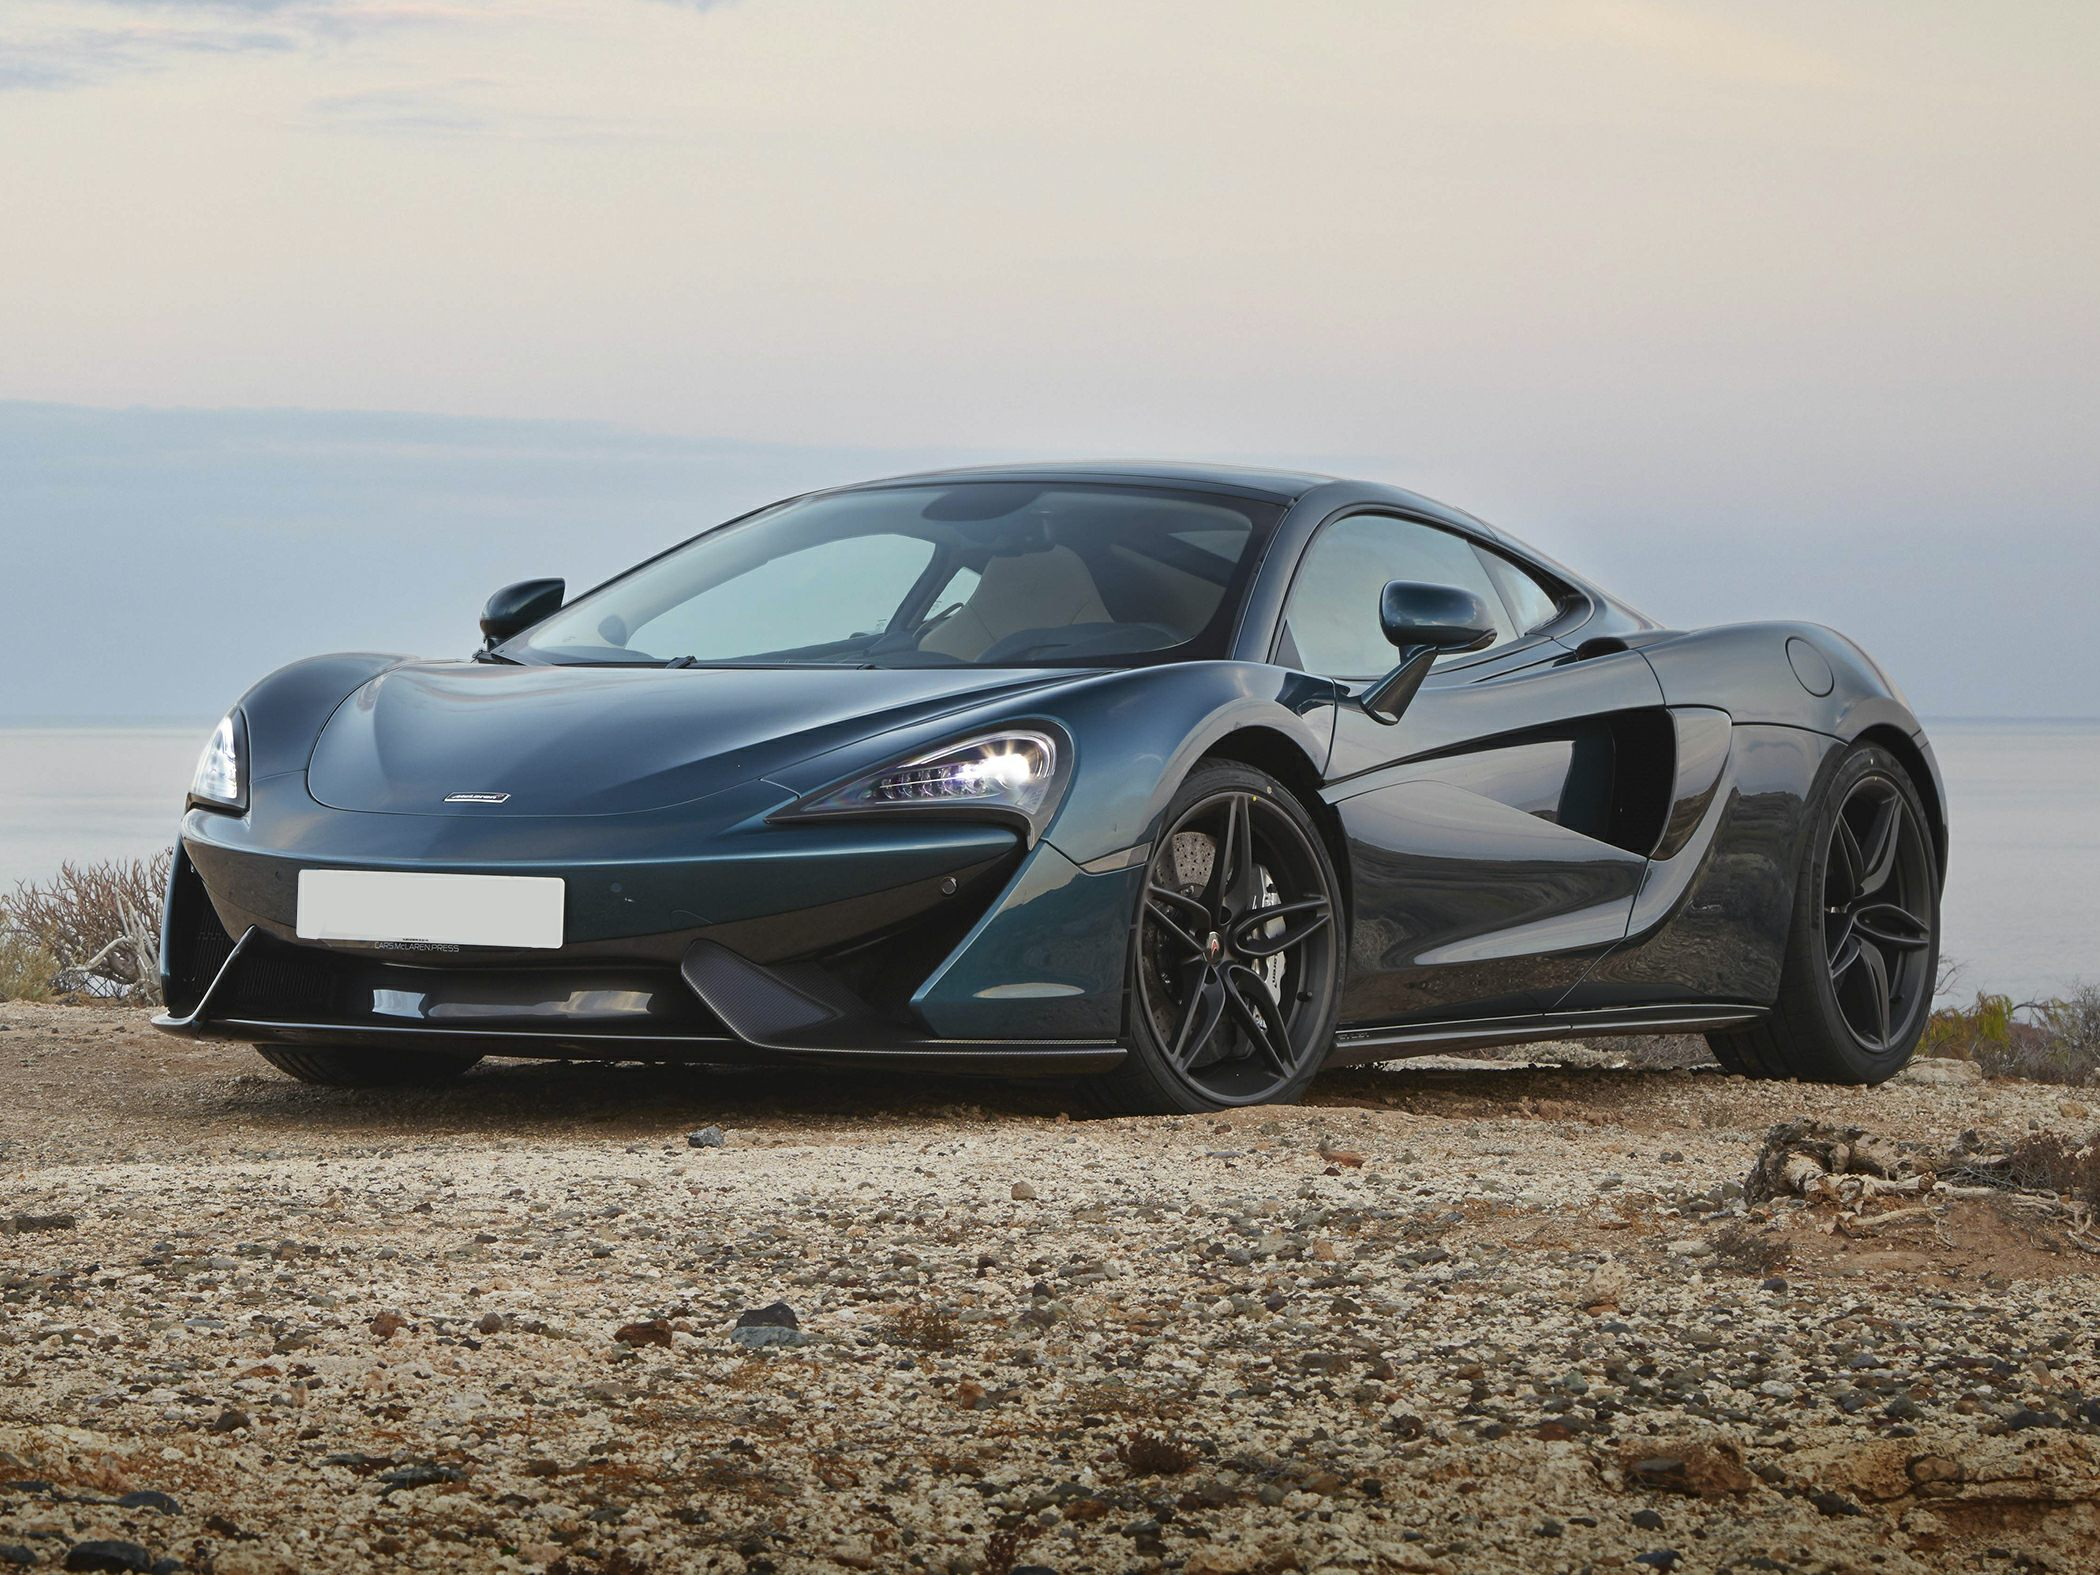 Transmissions For Cars >> 2017 McLaren 570GT Reviews, Specs and Prices | Cars.com